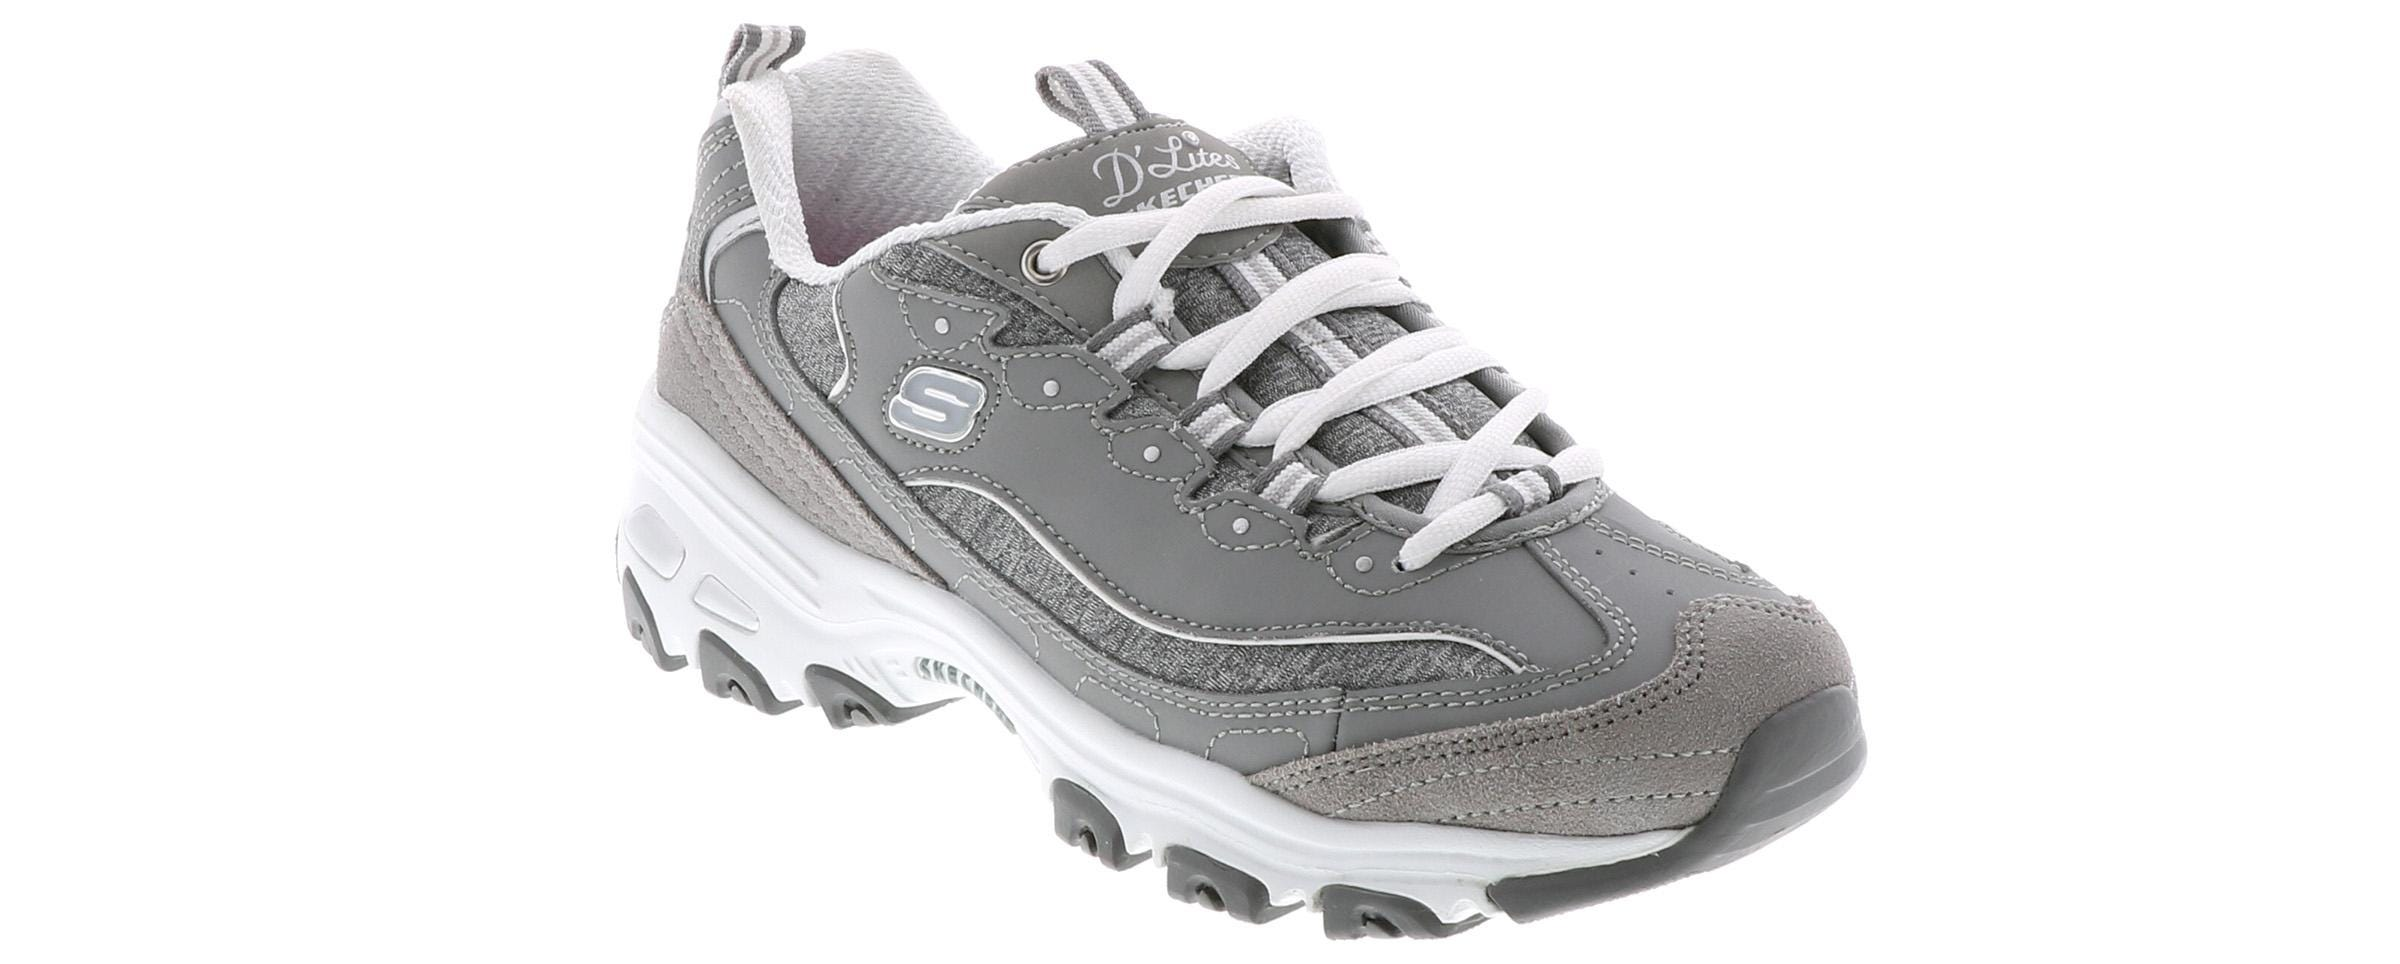 Women's Skechers D'lites Me Time